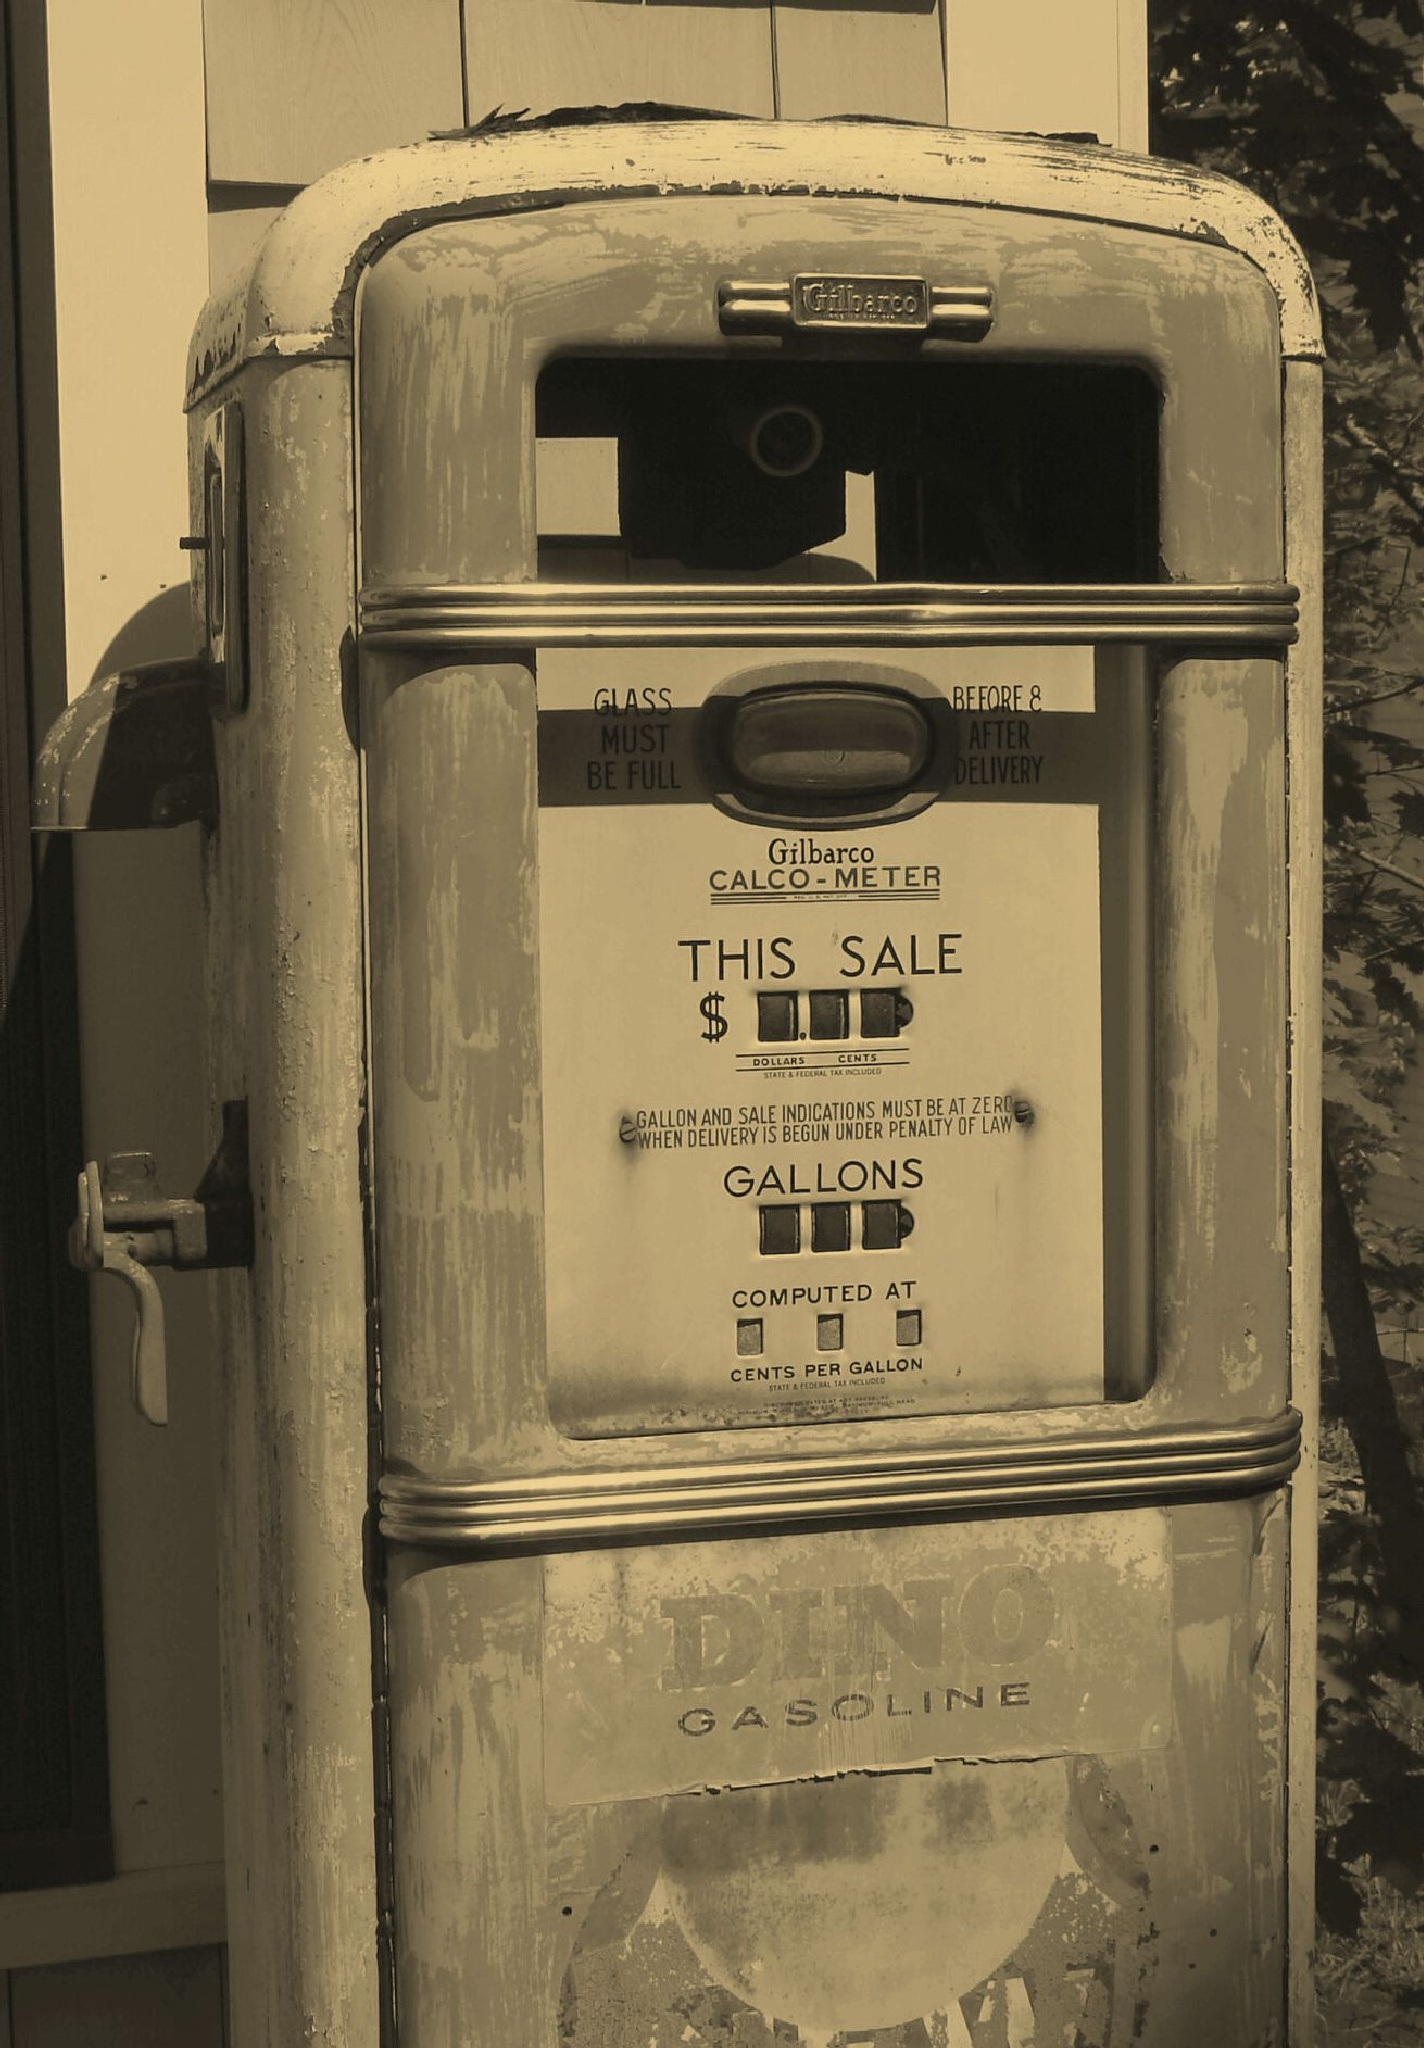 Old Gilbarco gas pump by Jacques Trempe